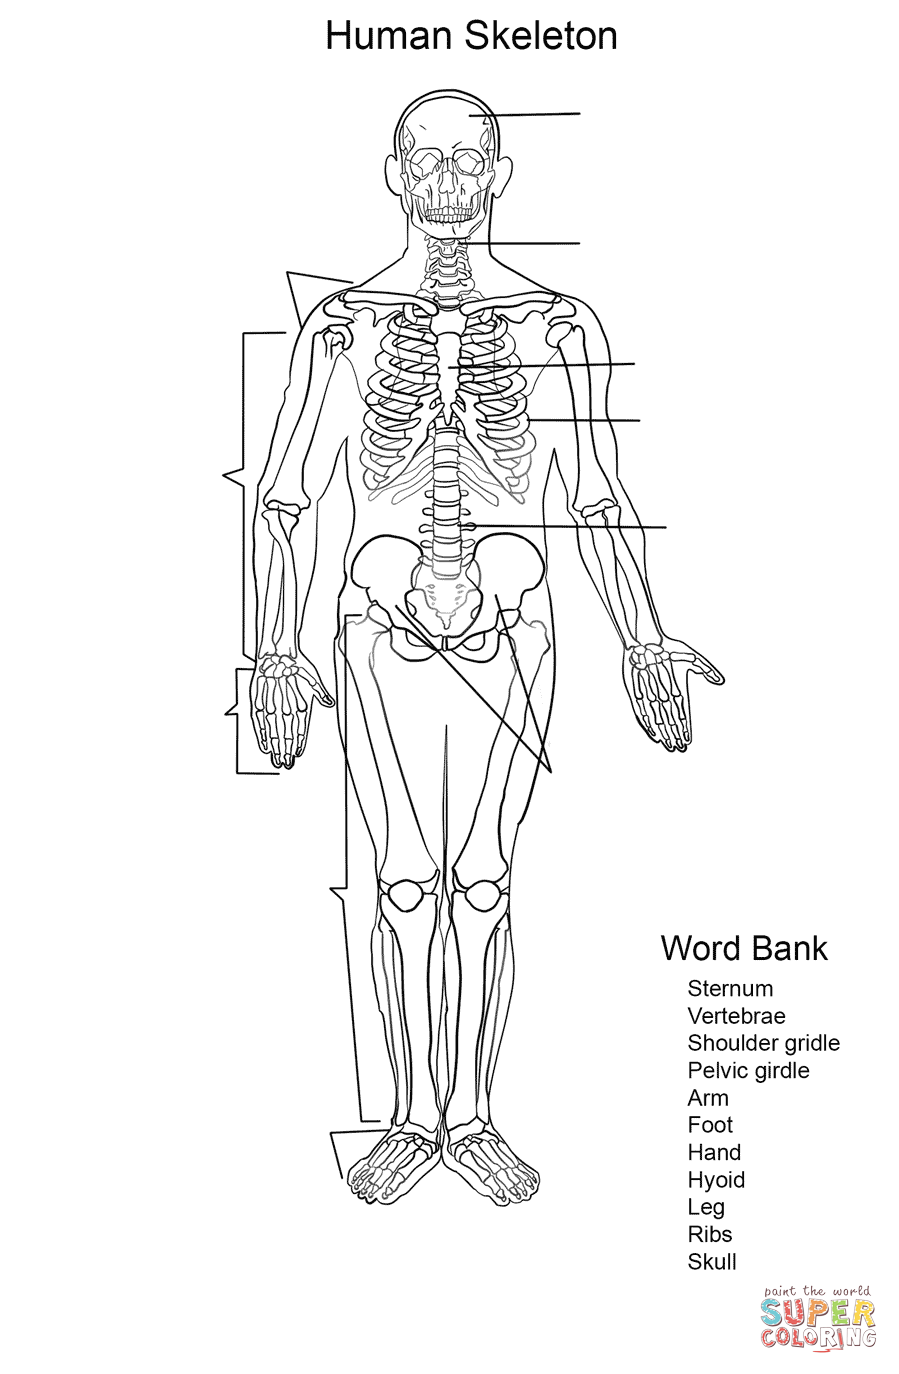 skeletal system coloring page skeletal system drawing at getdrawings free download page coloring skeletal system